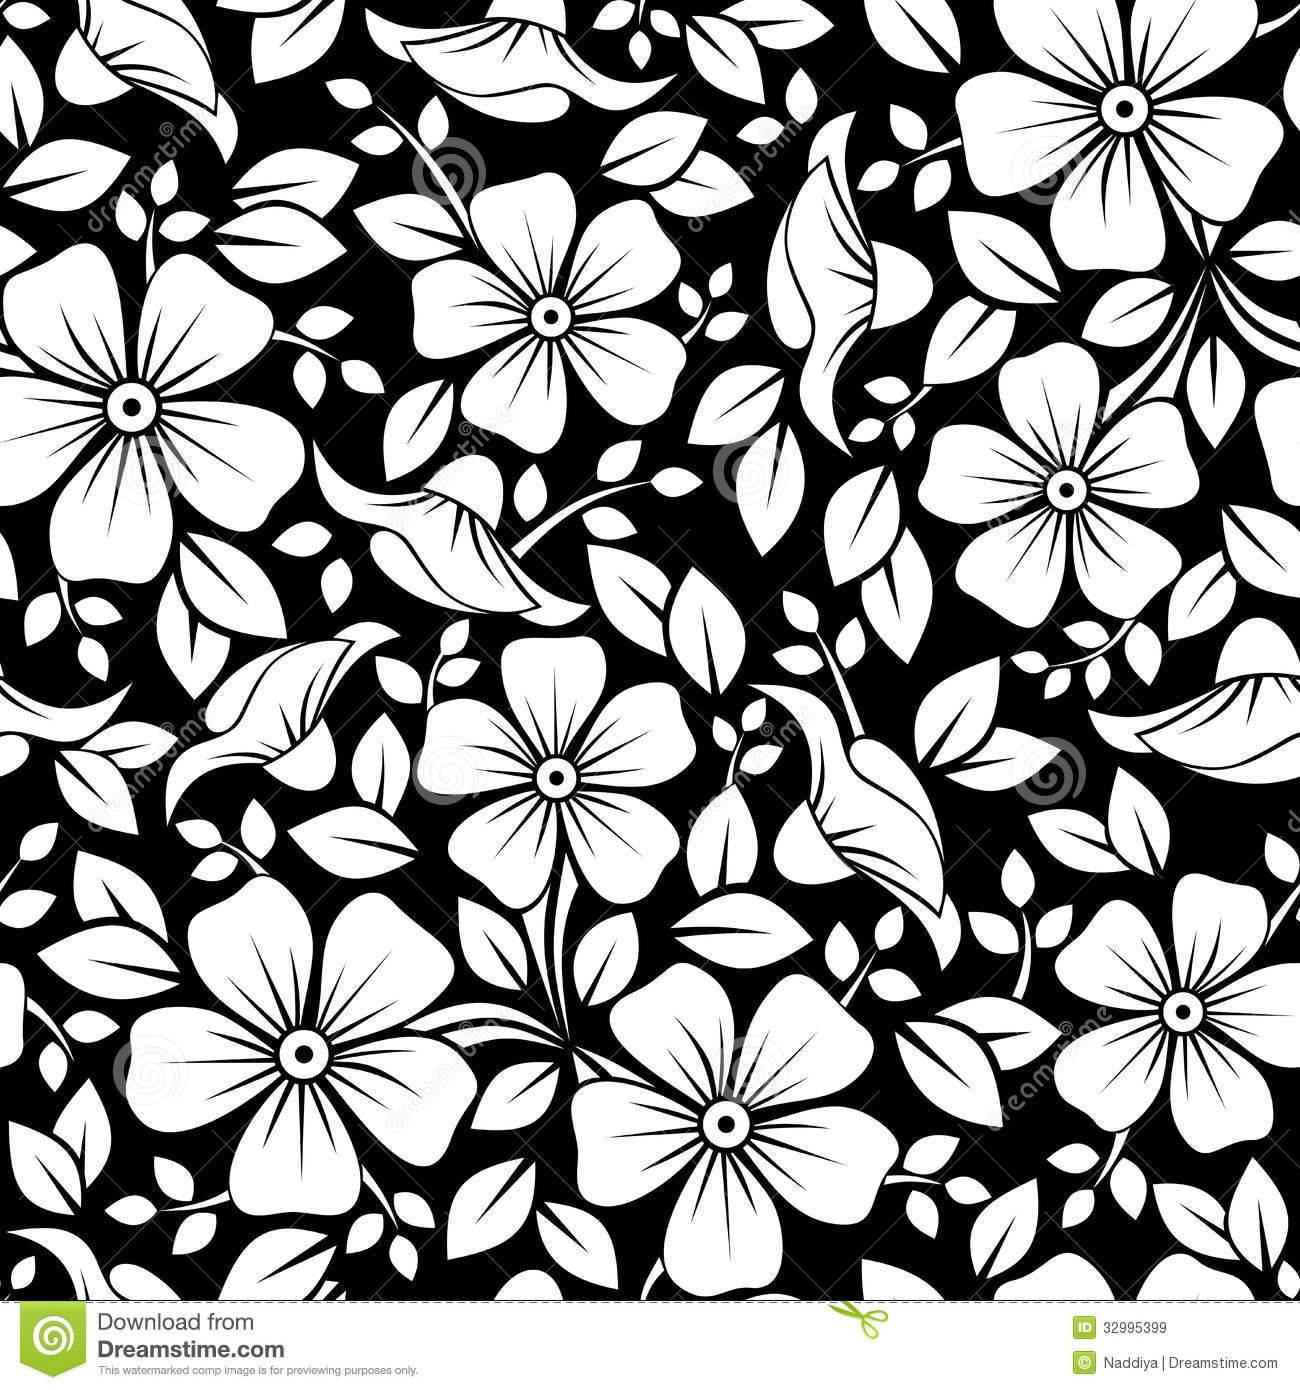 Black Flower And Bud Pattern Royalty Free Stock Photos: Seamless Pattern With Flowers And Leaves. Royalty Free